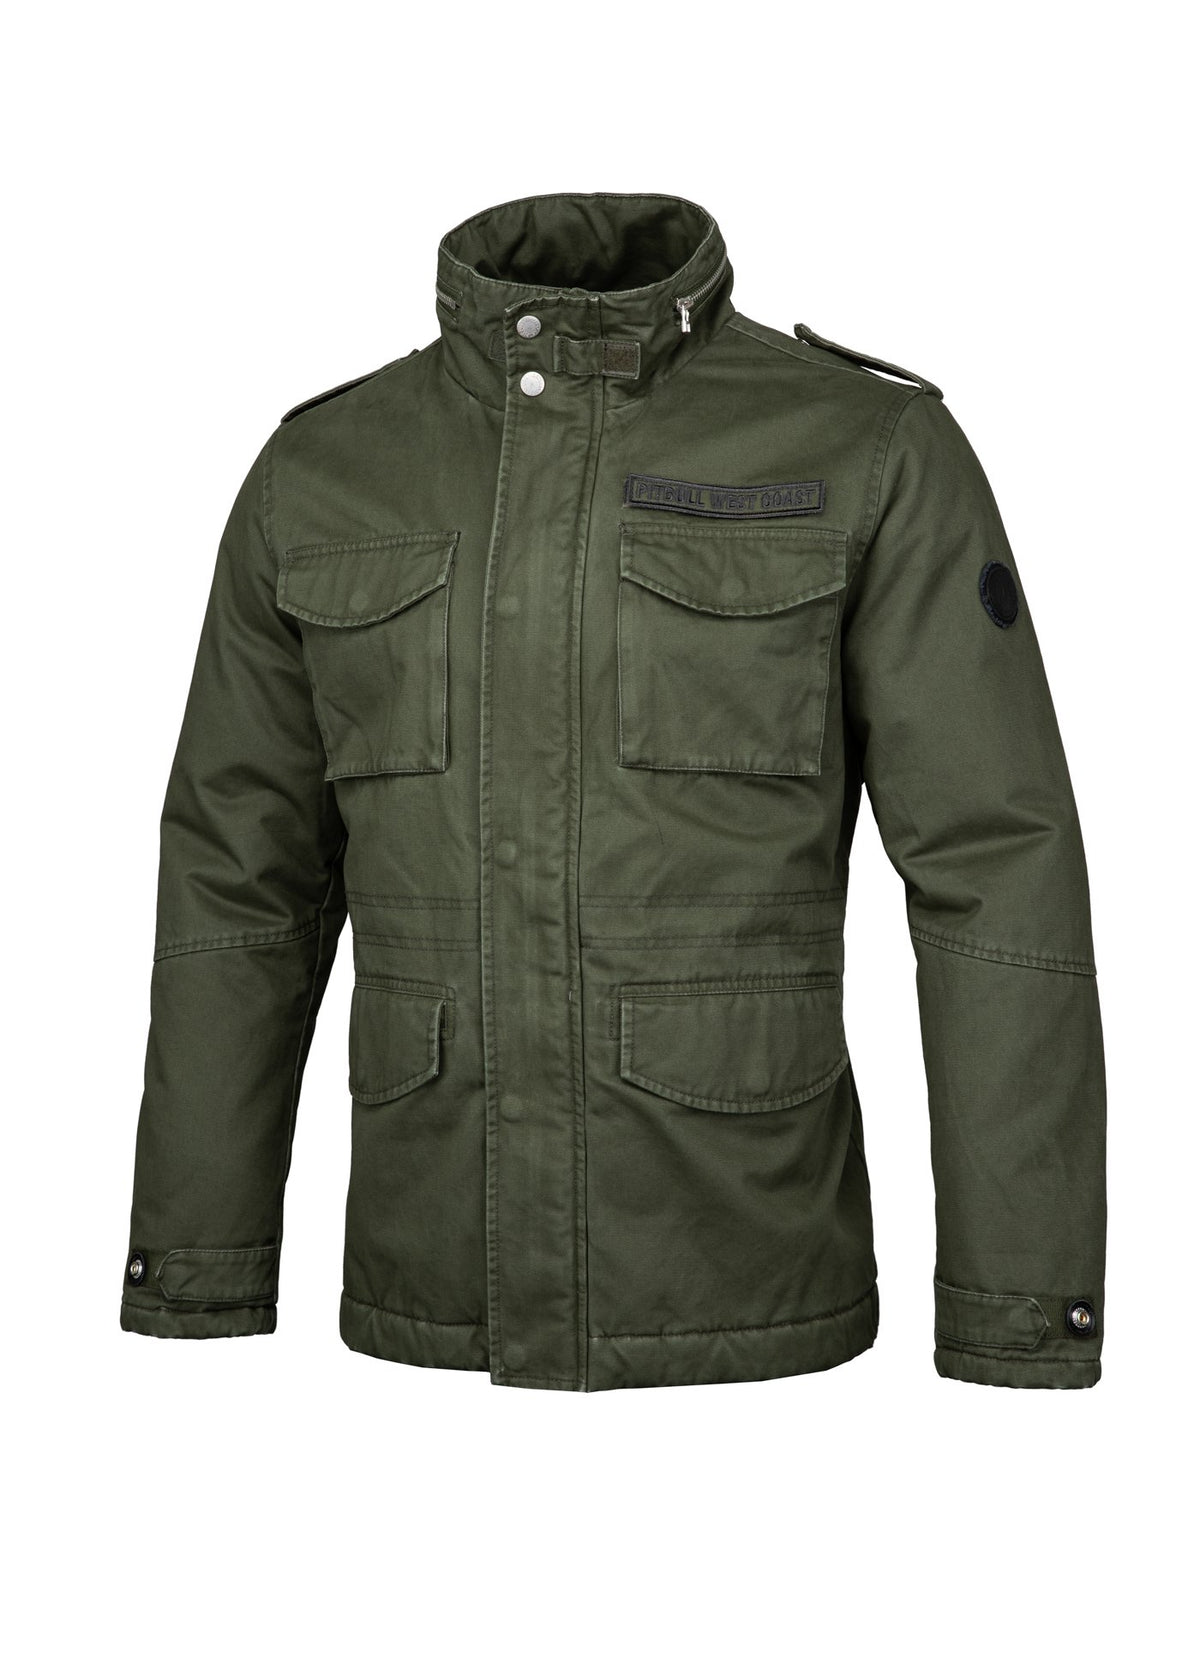 WINTER JACKET MONTEREY OLIVE - Pitbull West Coast U.S.A.